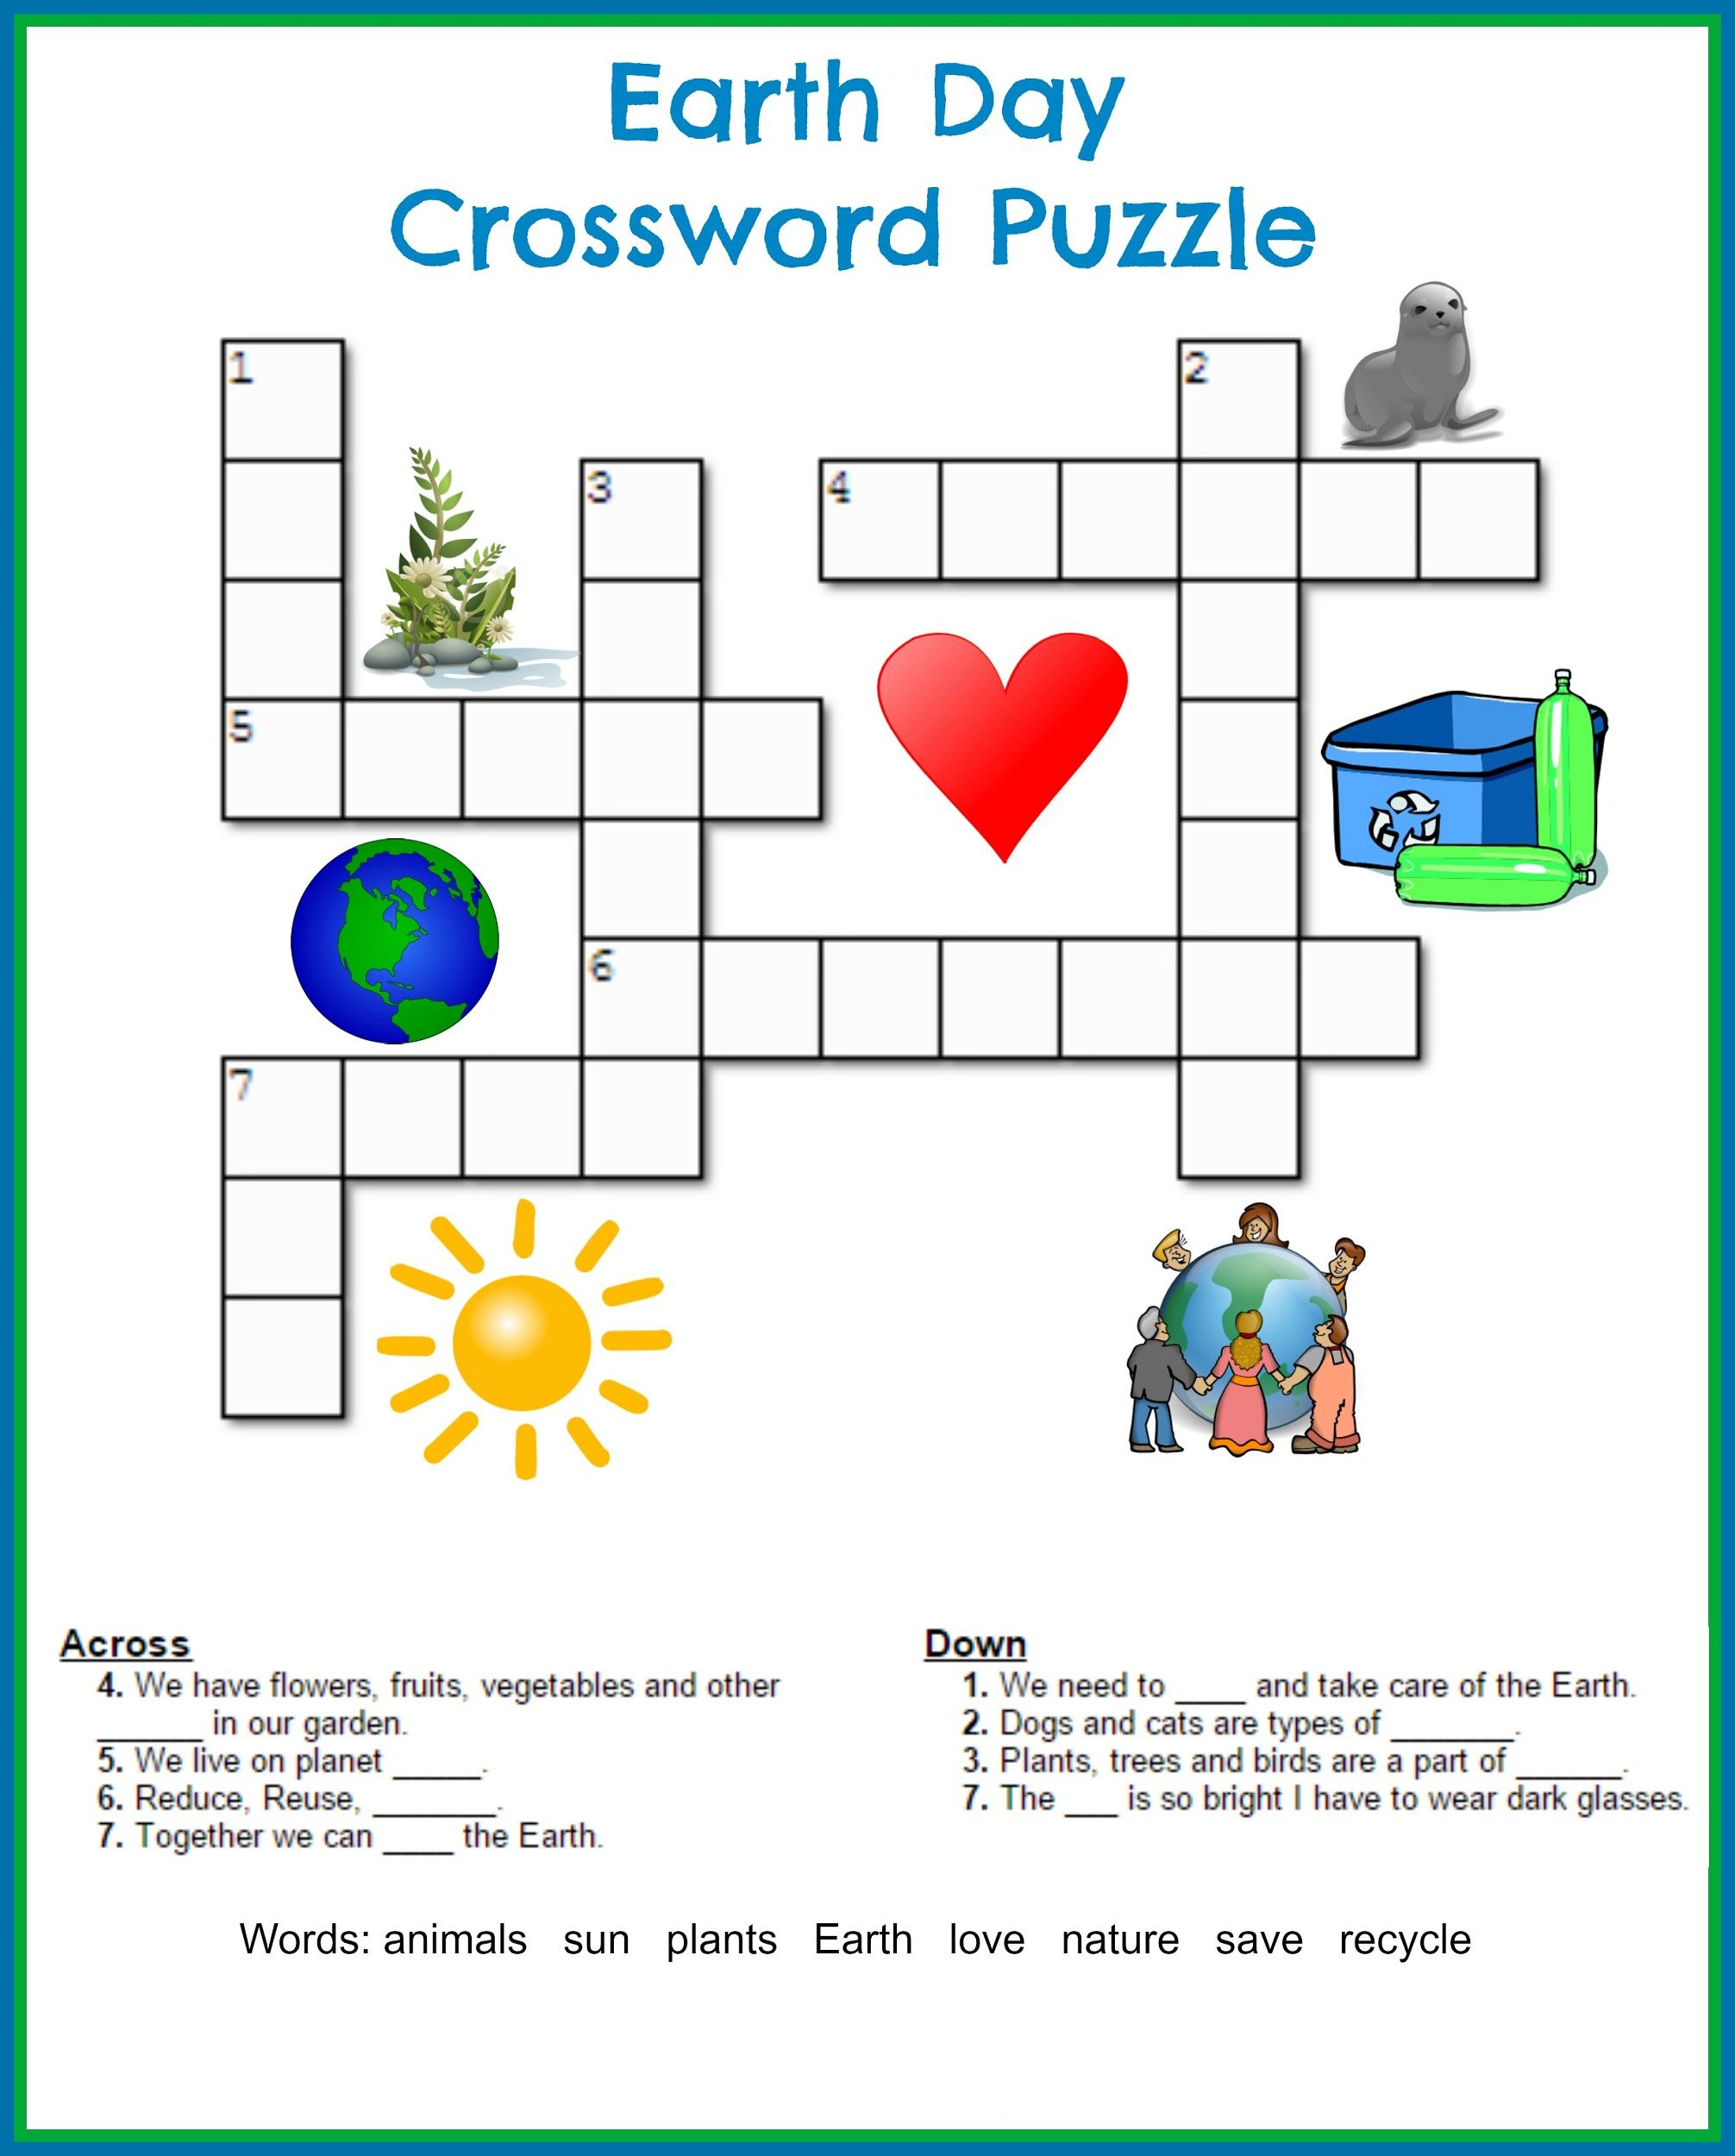 Printable Crossword Puzzles Kids | Crossword Puzzles On Earth - Printable Crossword Puzzles For 5Th Graders